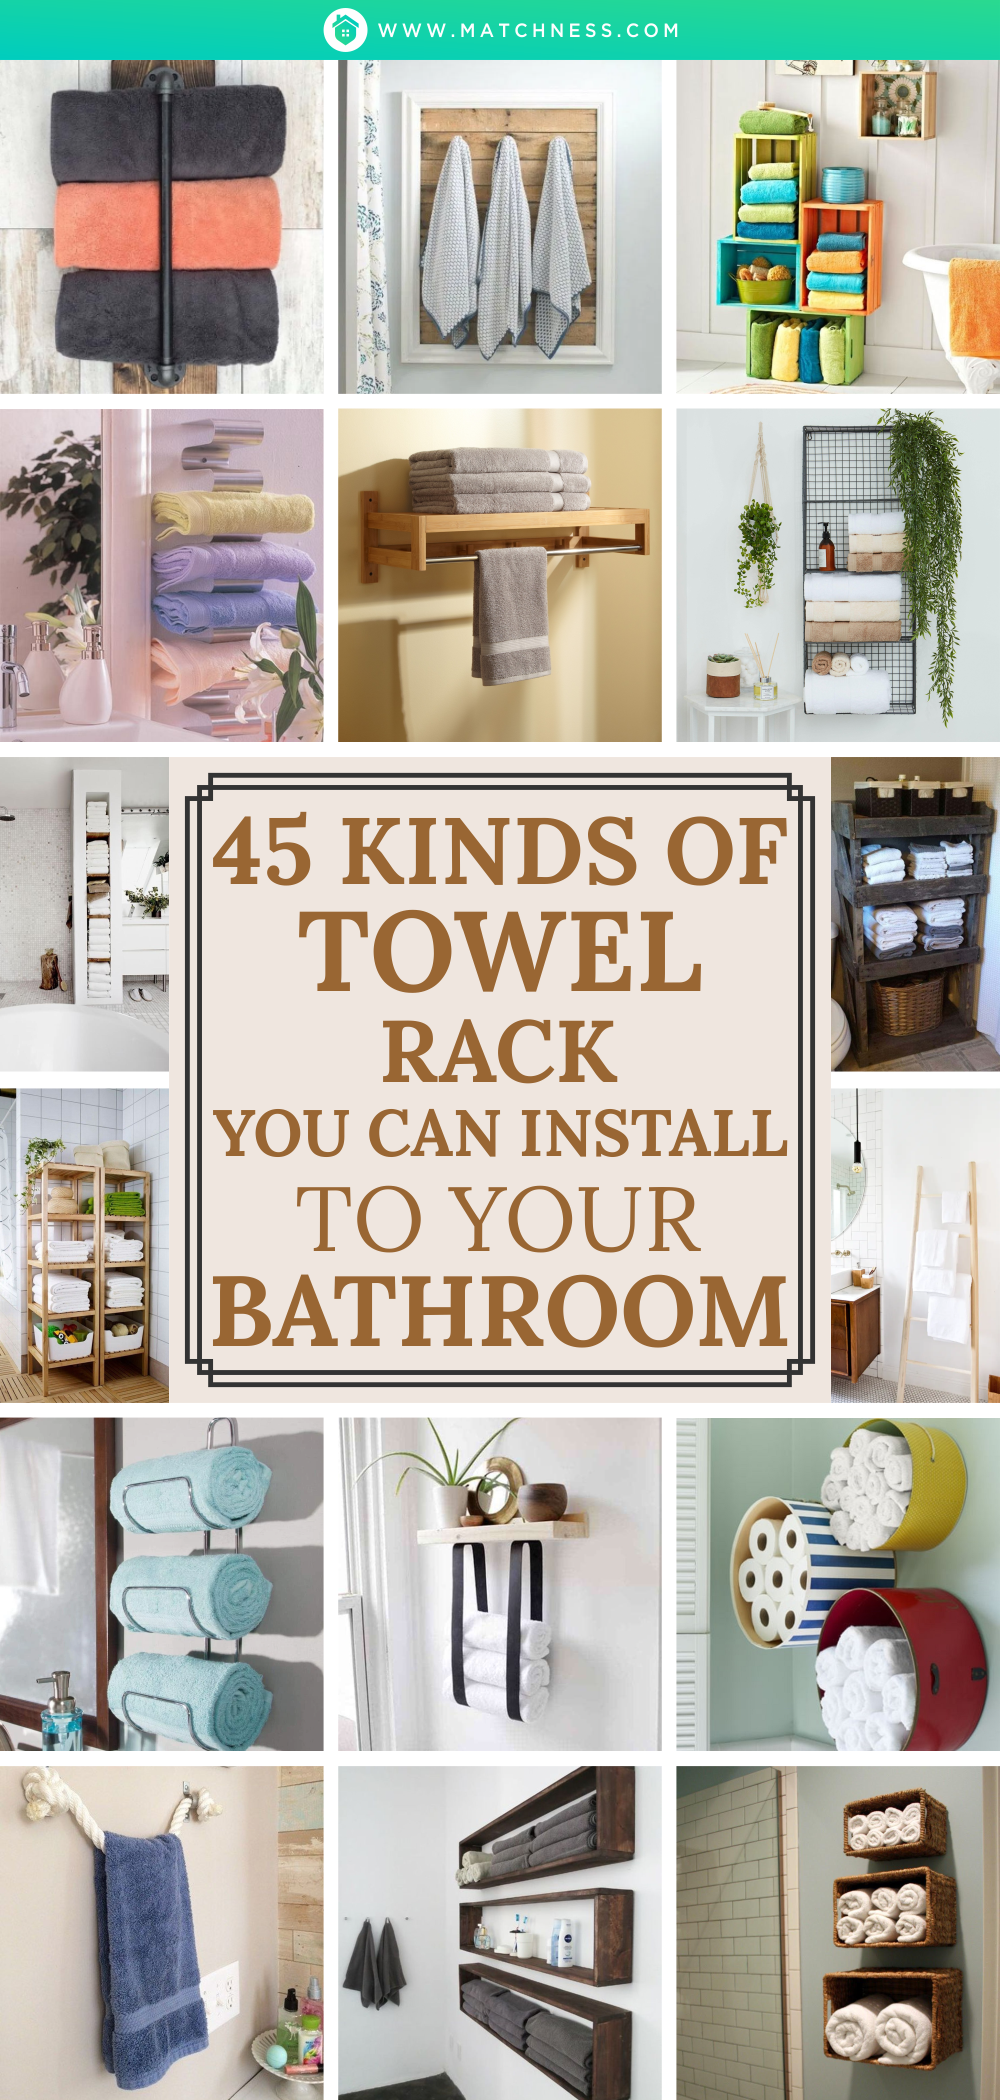 45-kinds-of-towel-rack-you-can-install-to-your-bathroom1